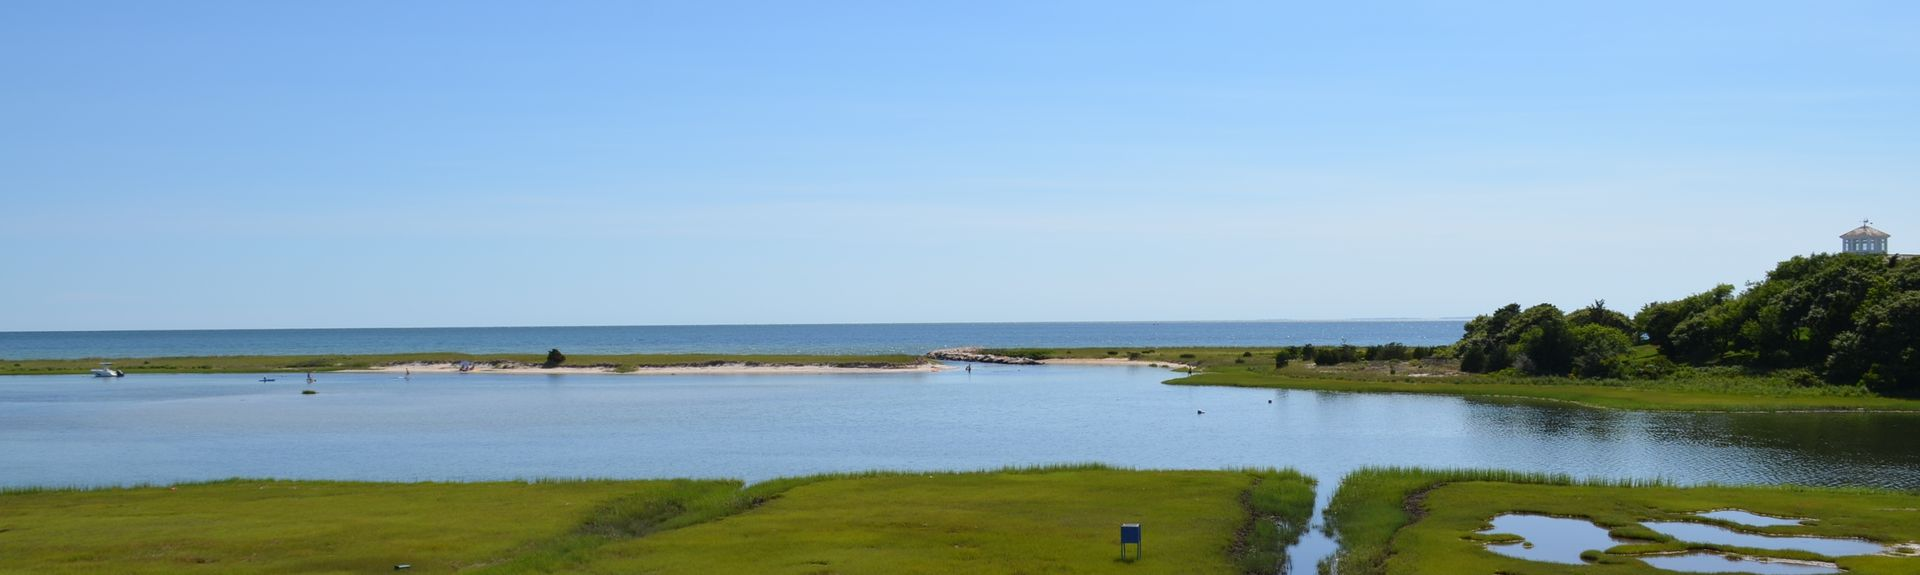 West Hyannis Port, Barnstable, Massachusetts, Stati Uniti d'America